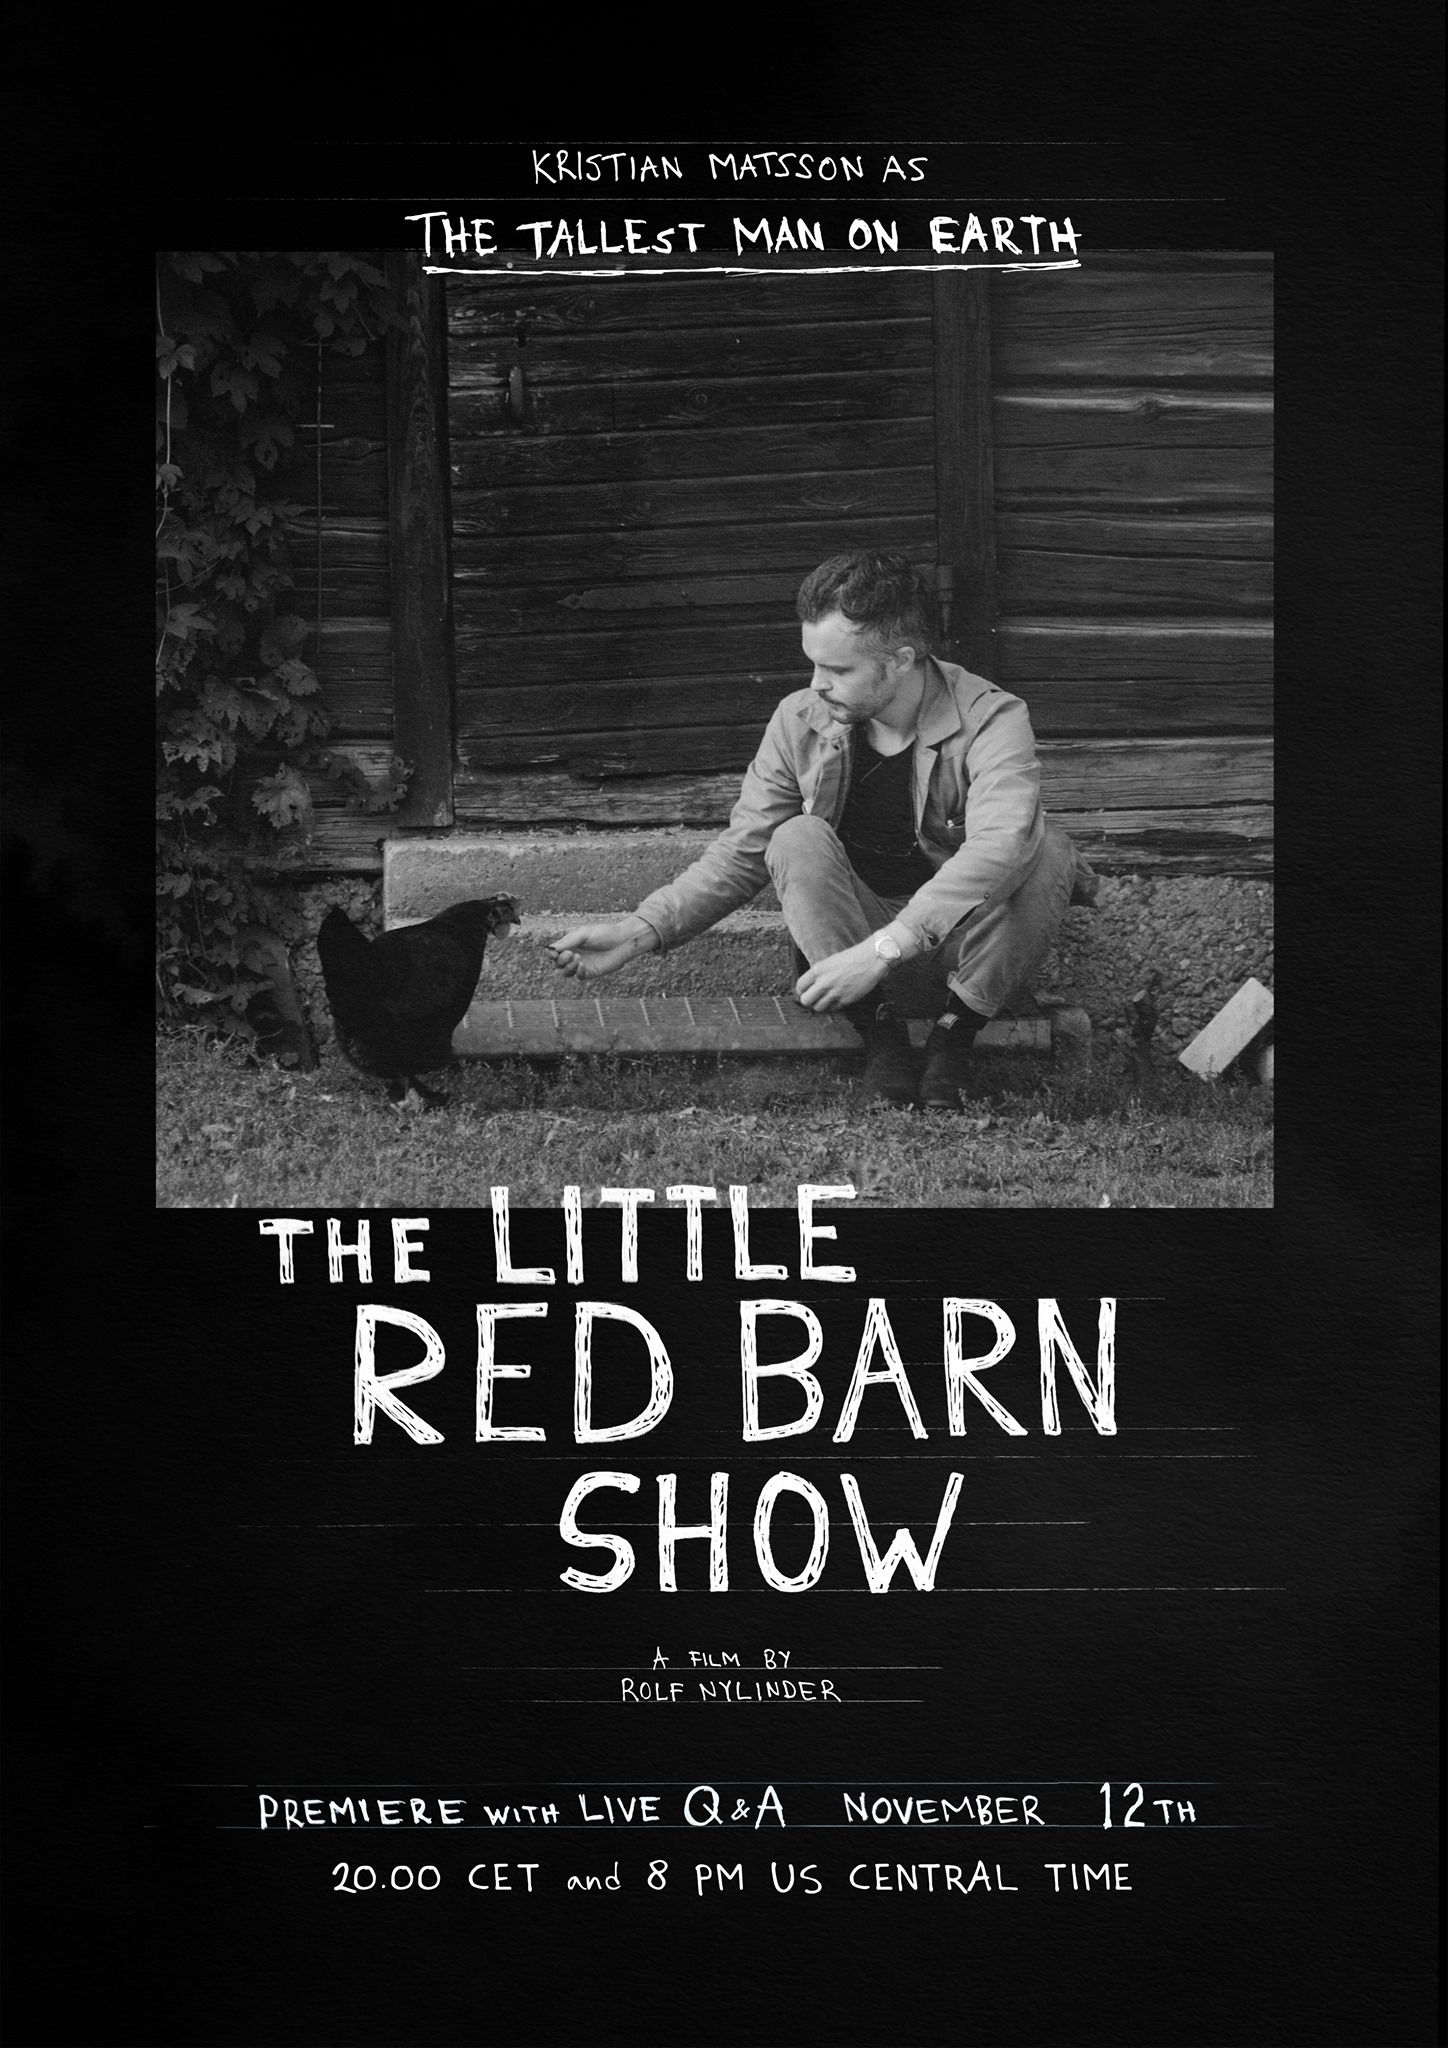 The Tallest Man On Earth - The Little Red Barn Show